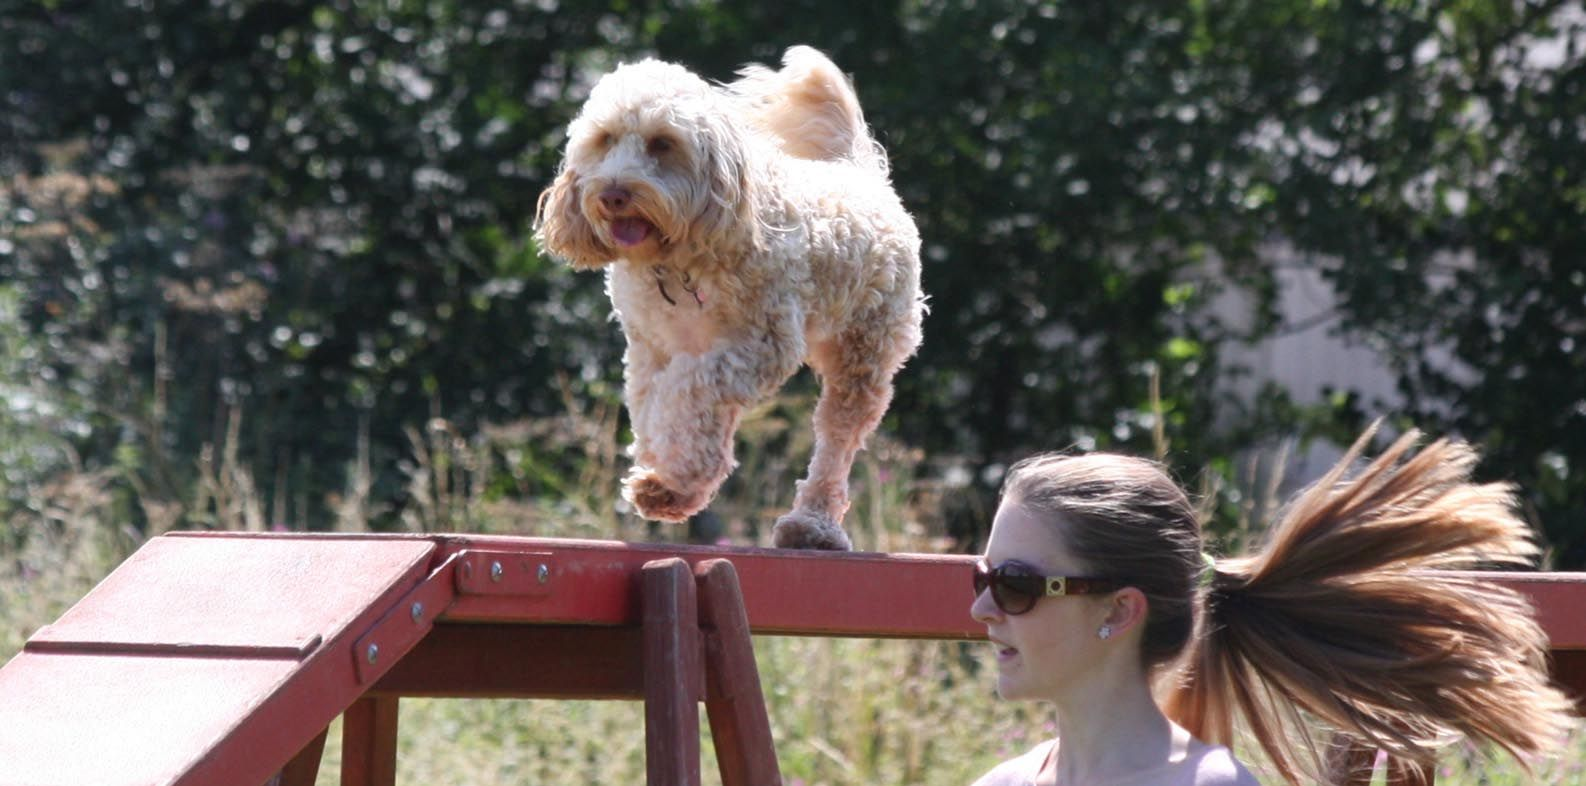 Dog Training And Agility Club Based In Leicester We Run A Range